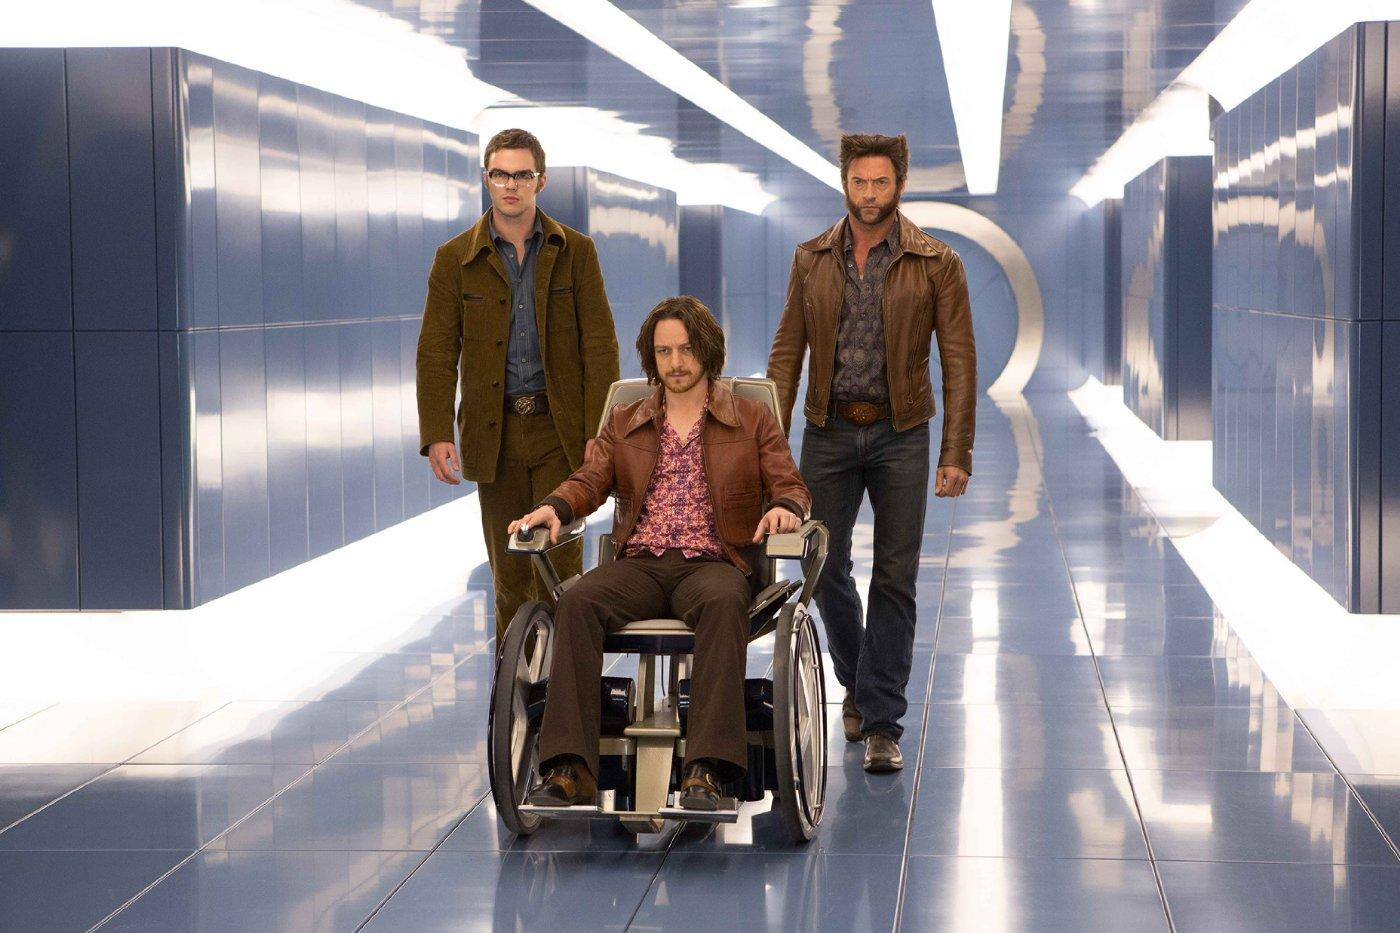 X-Men: Days of Future Past Promo Picture From imdb.com